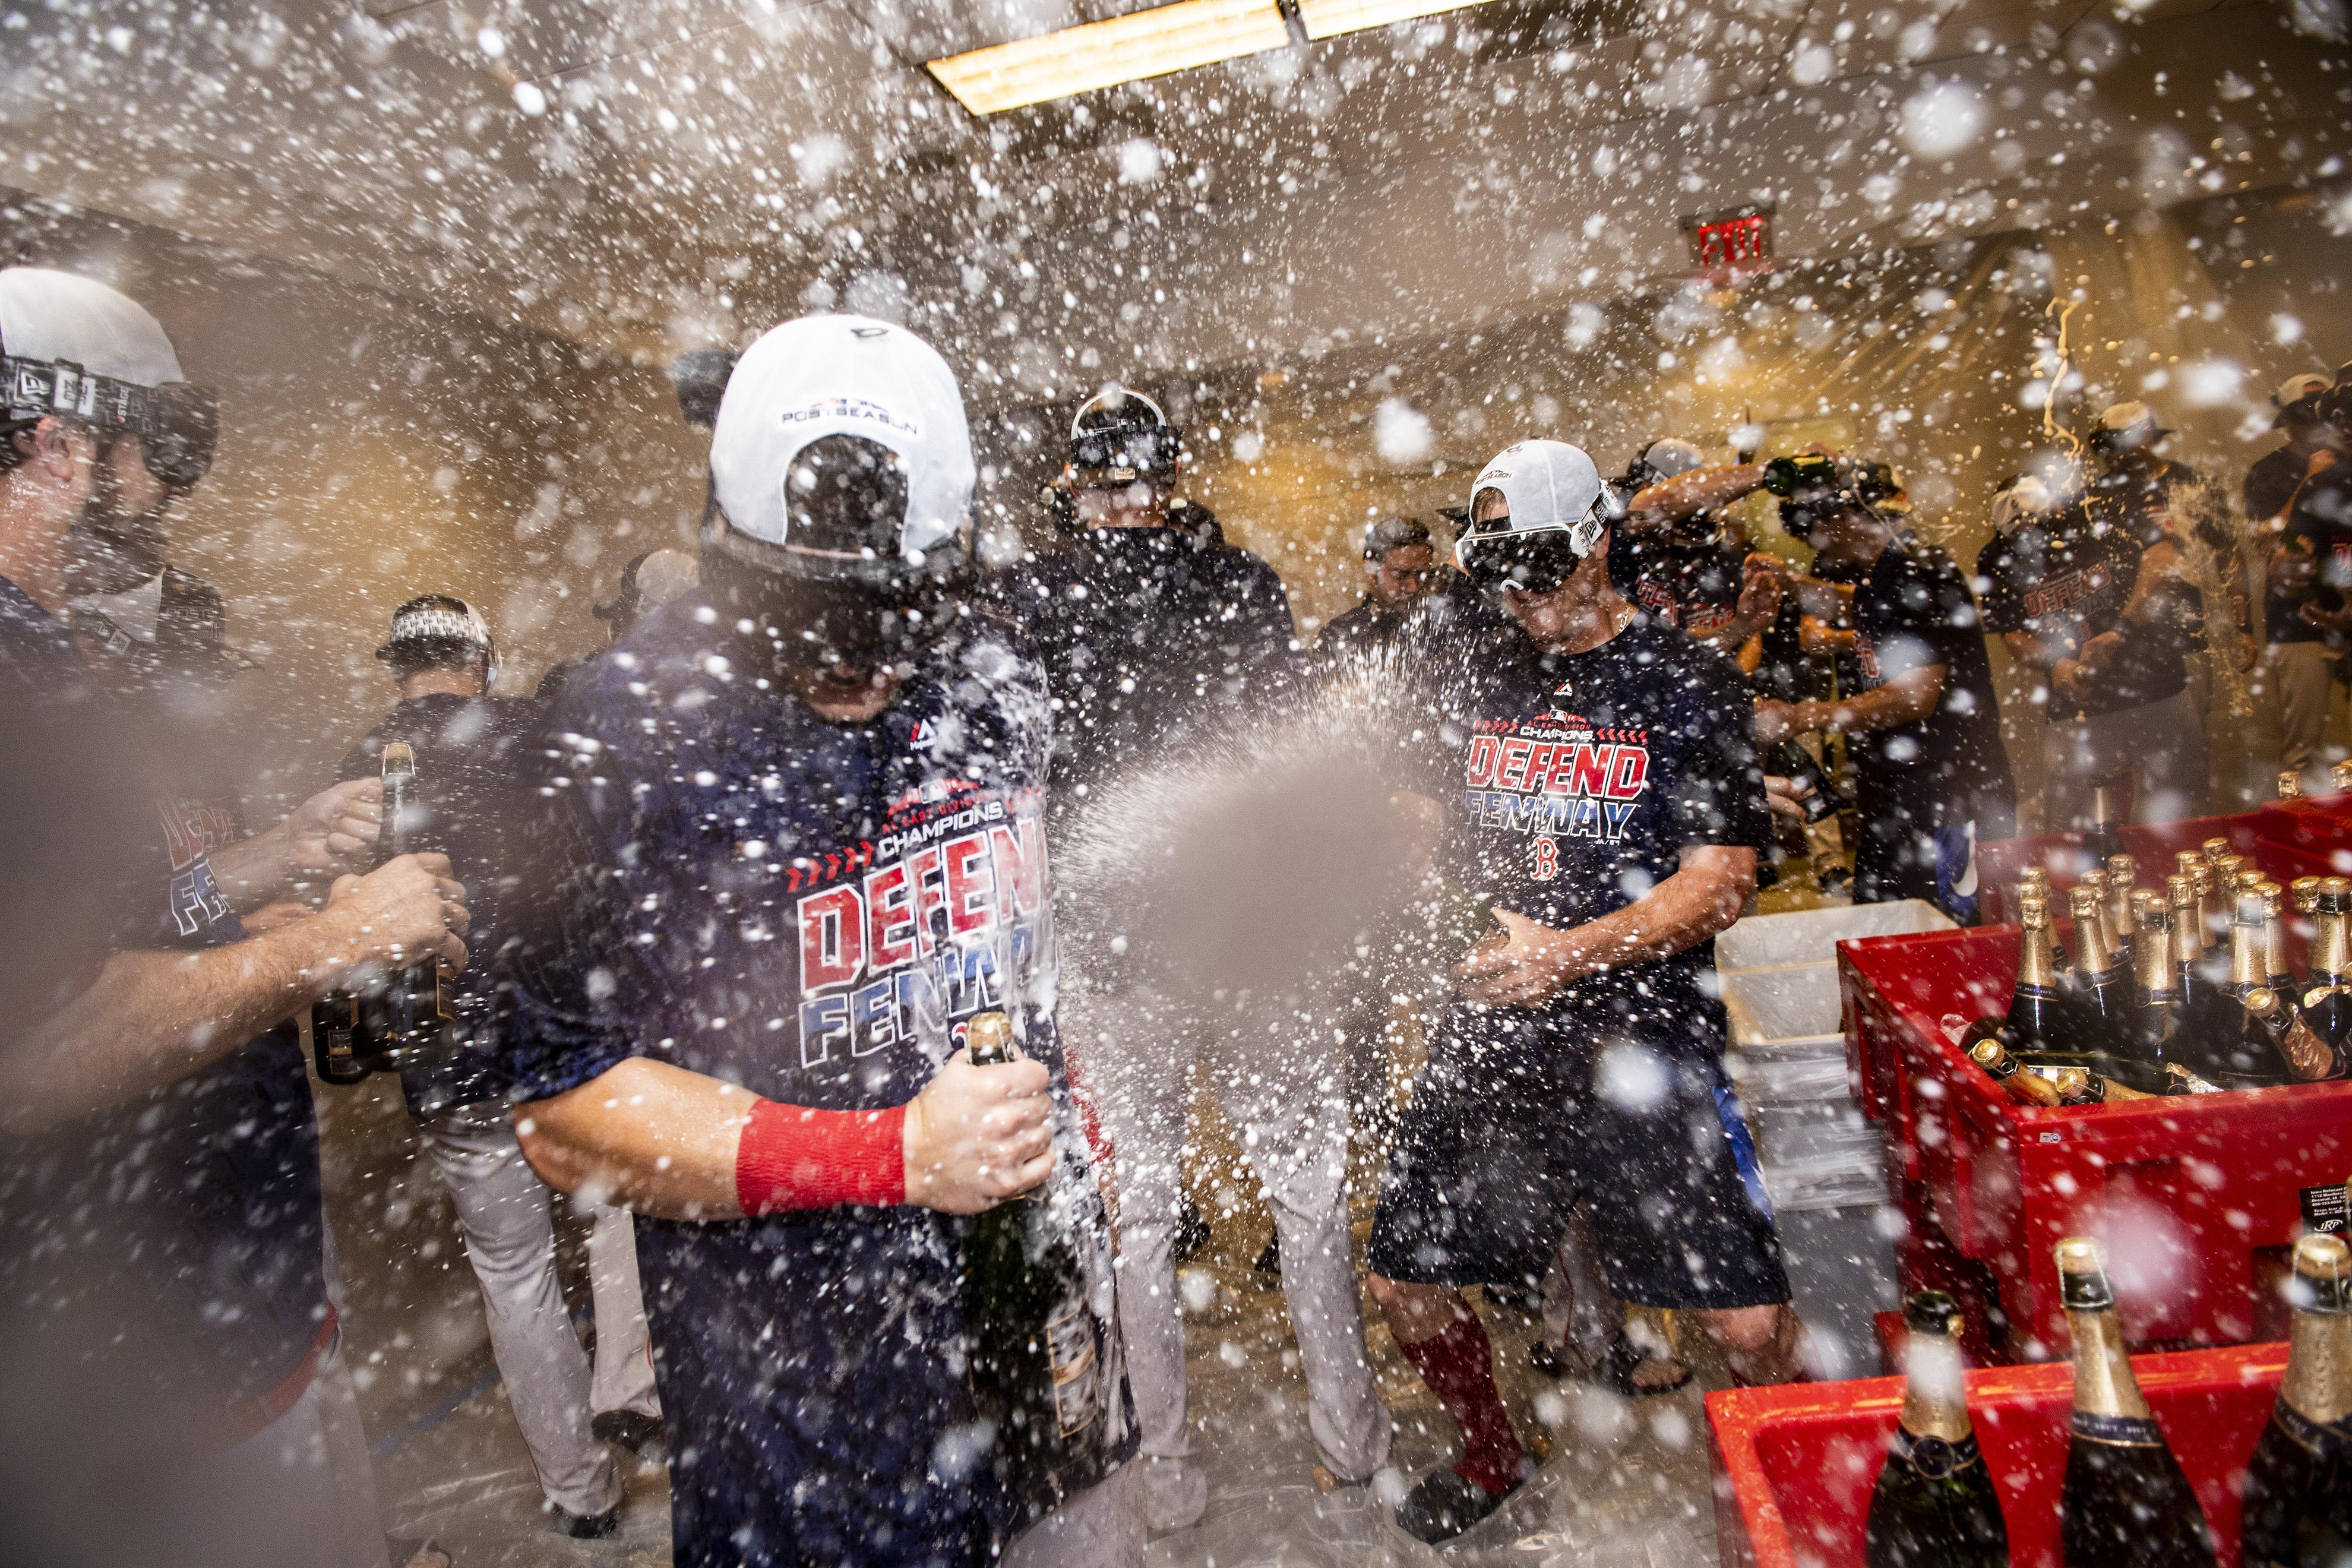 The Boston Red Sox celebrated their title win by spraying champagne all over the clubhouse